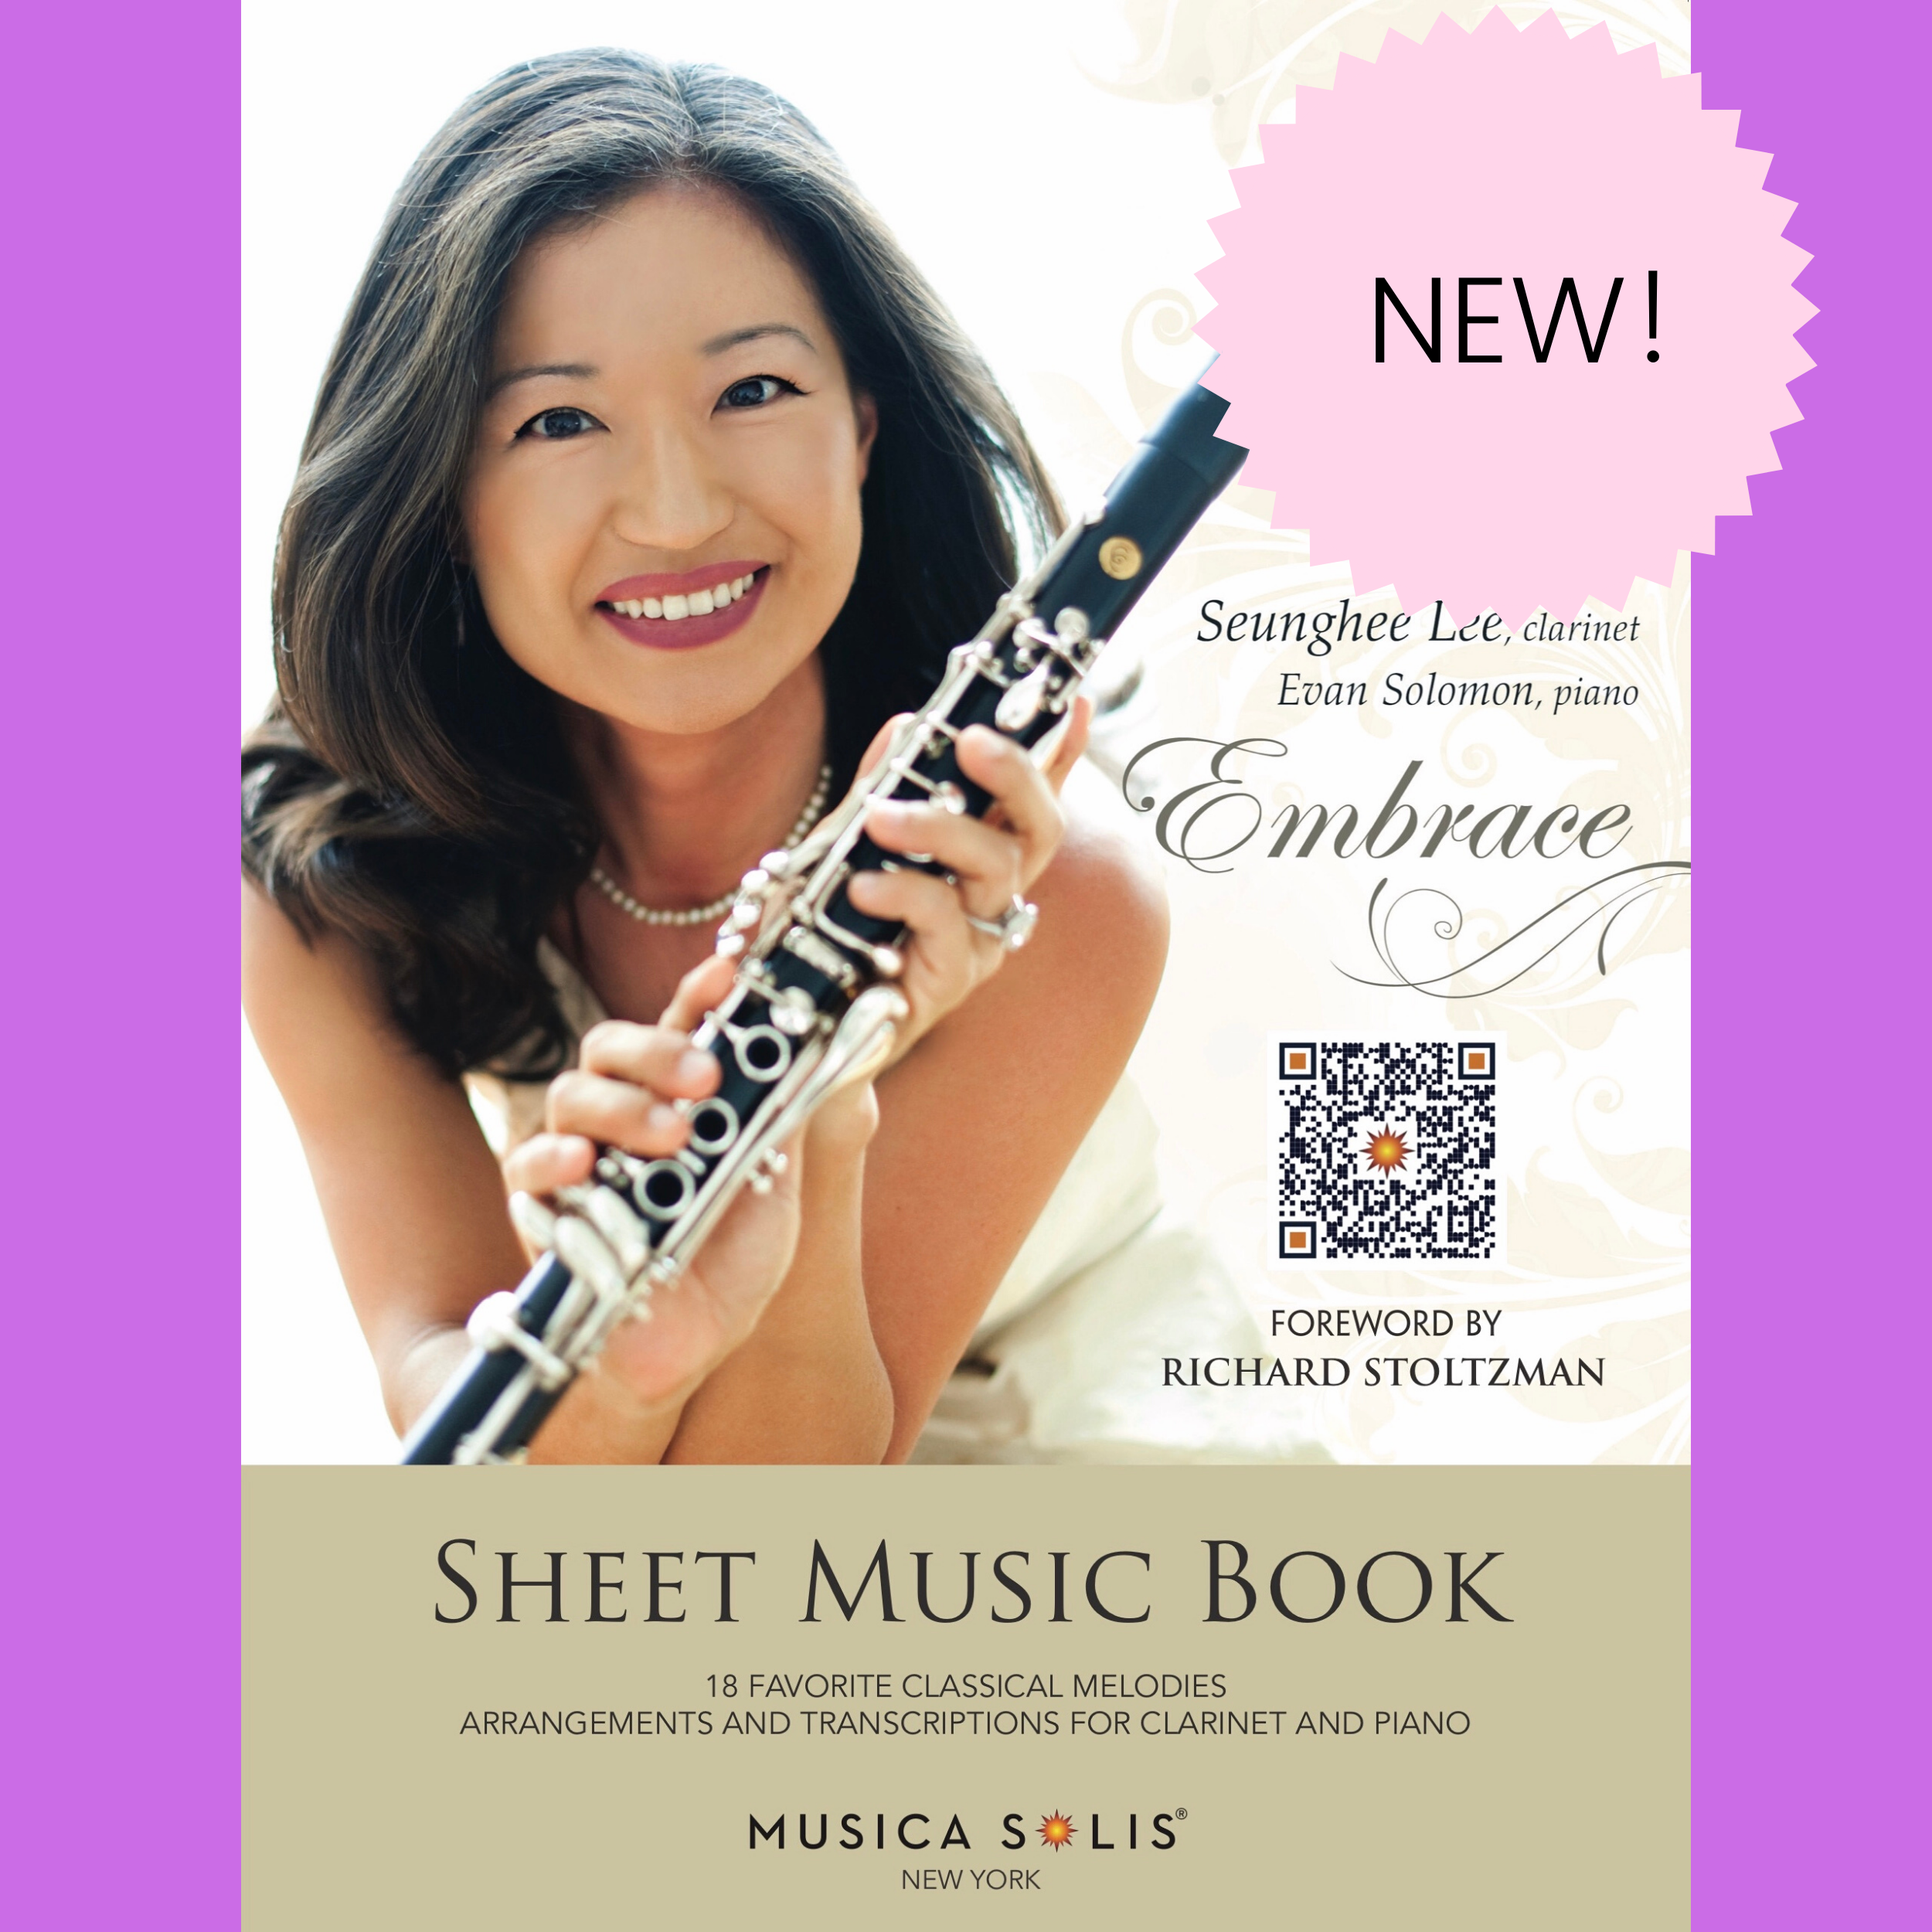 NEW! Embrace Sheet Music Book by Seunghee Lee